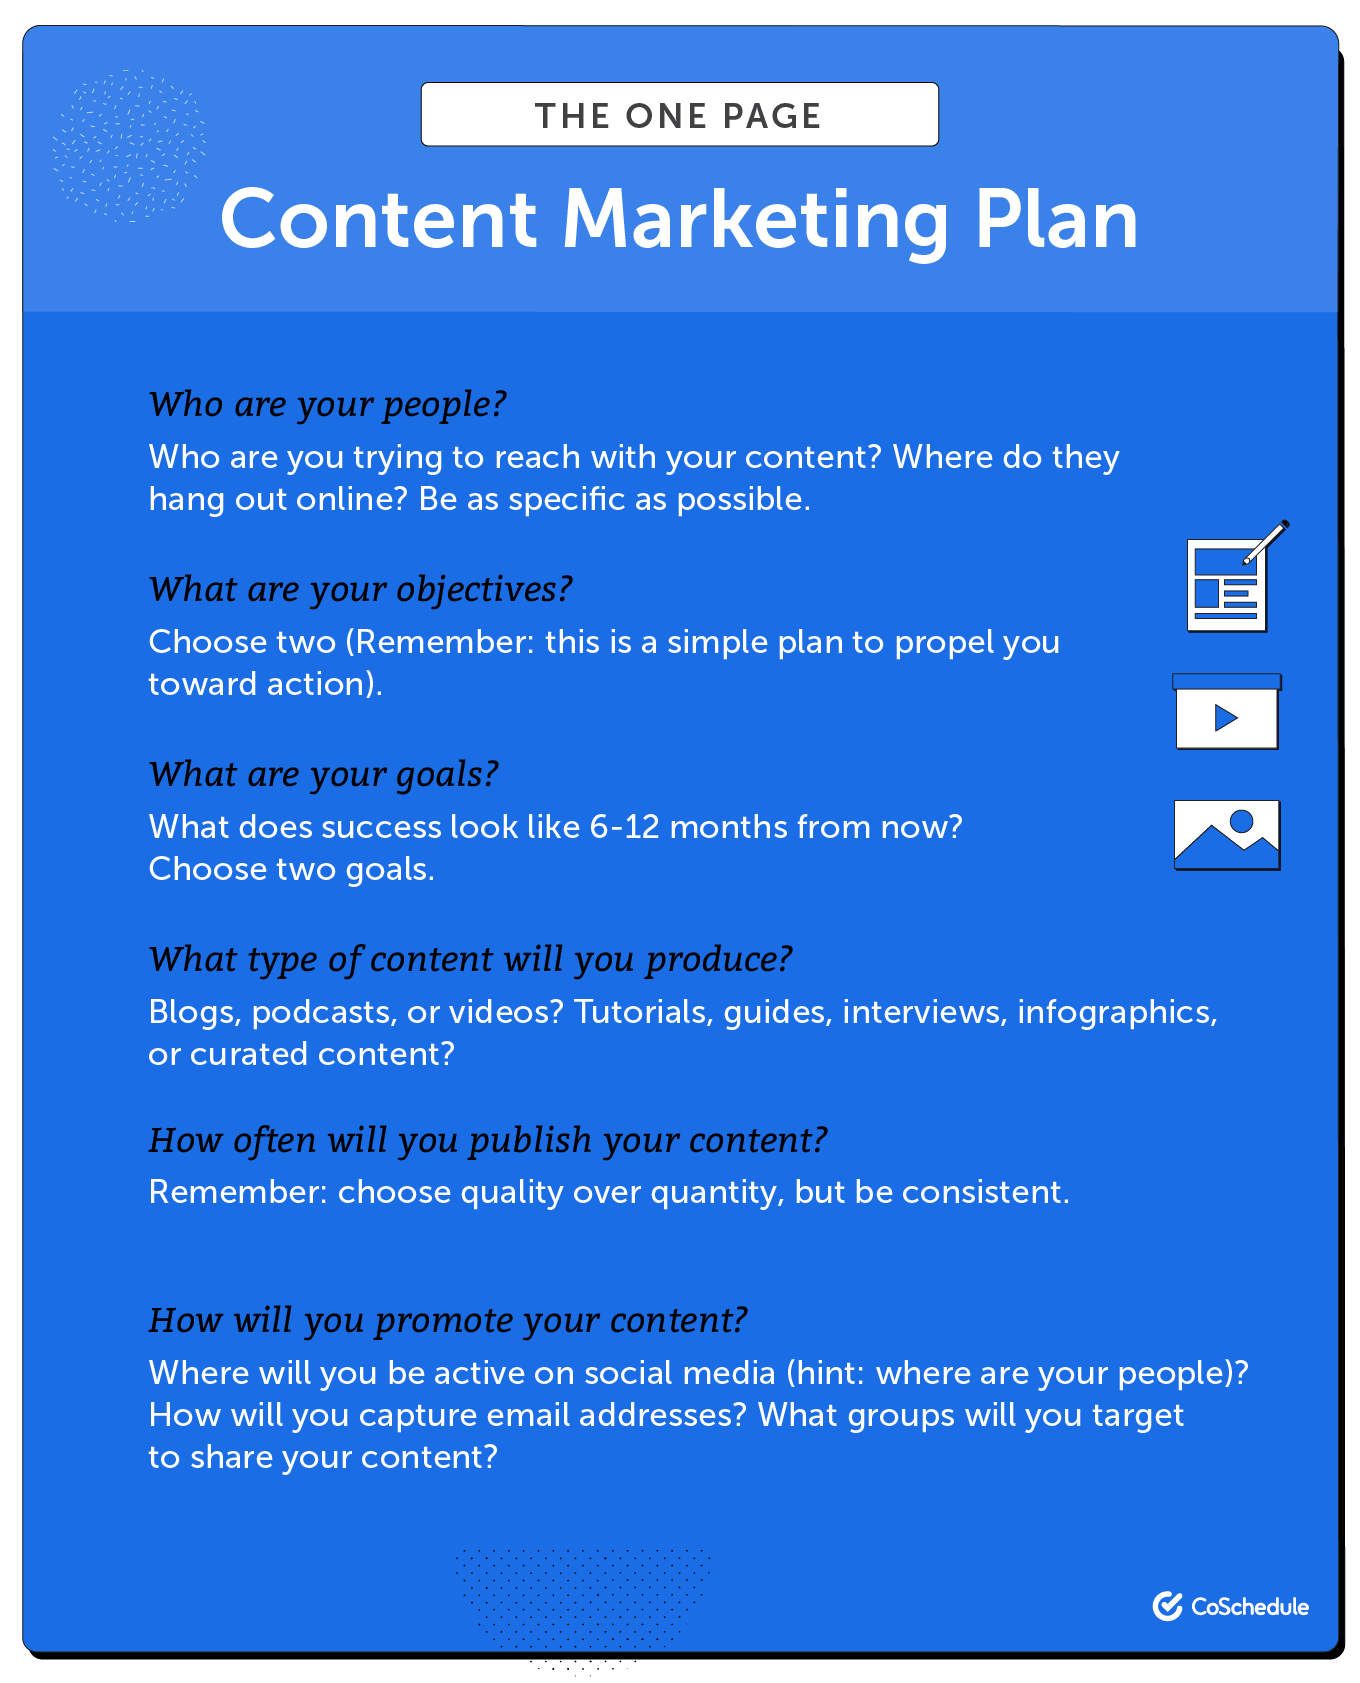 One page content marketing plan.